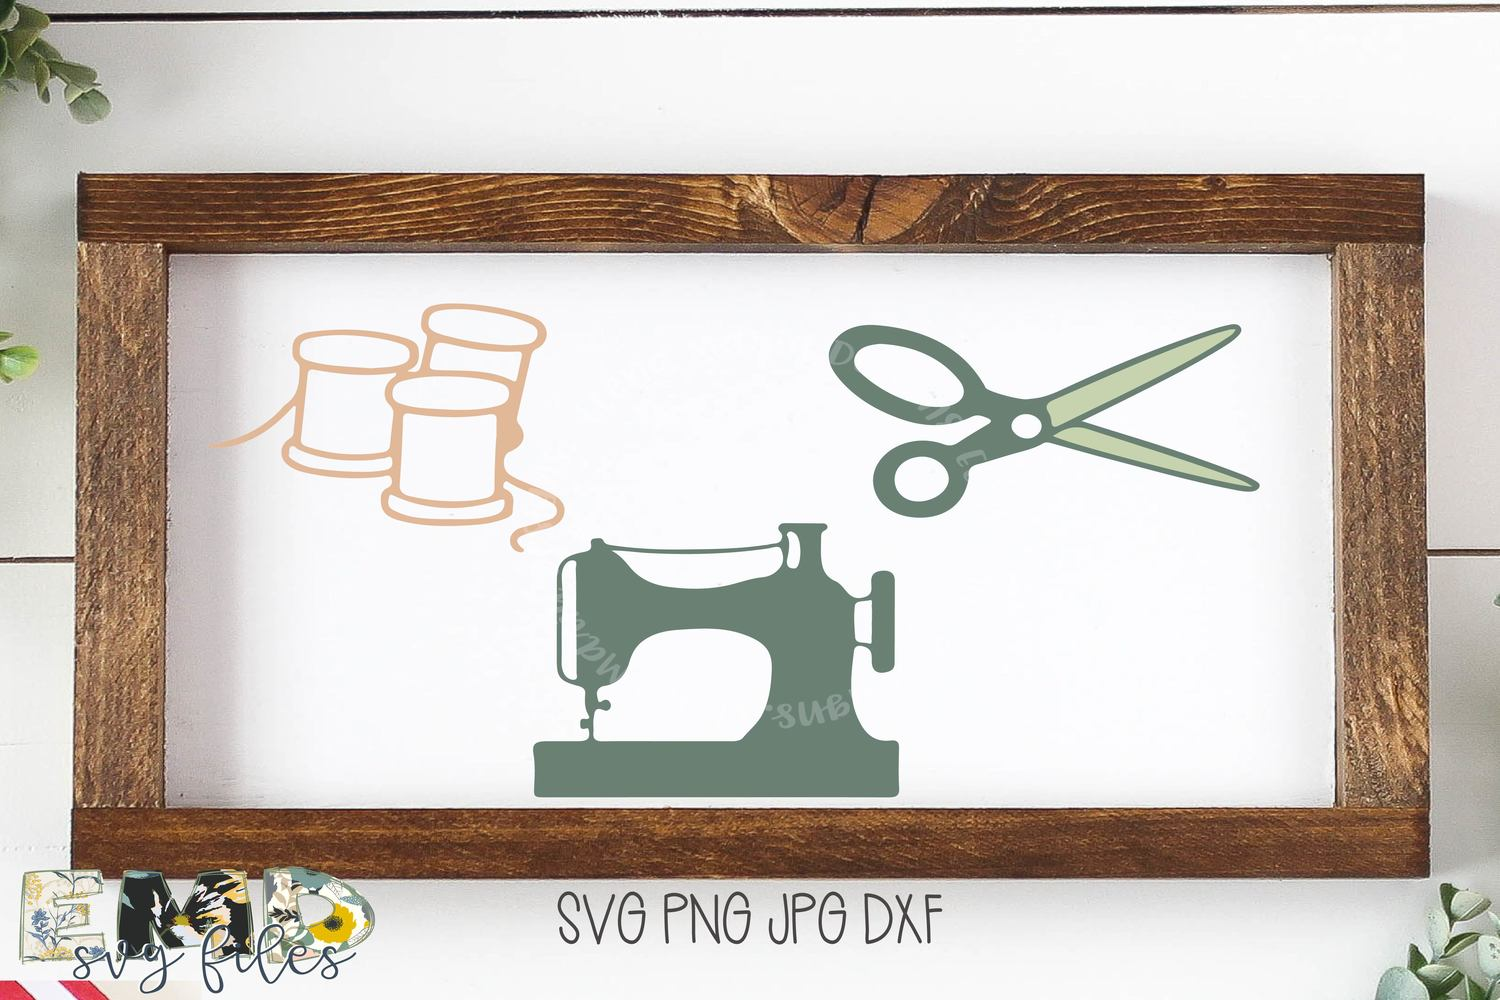 Sewing SVG Bundle, Creative SVG Files, Fabric Svg, Quilting example image 8